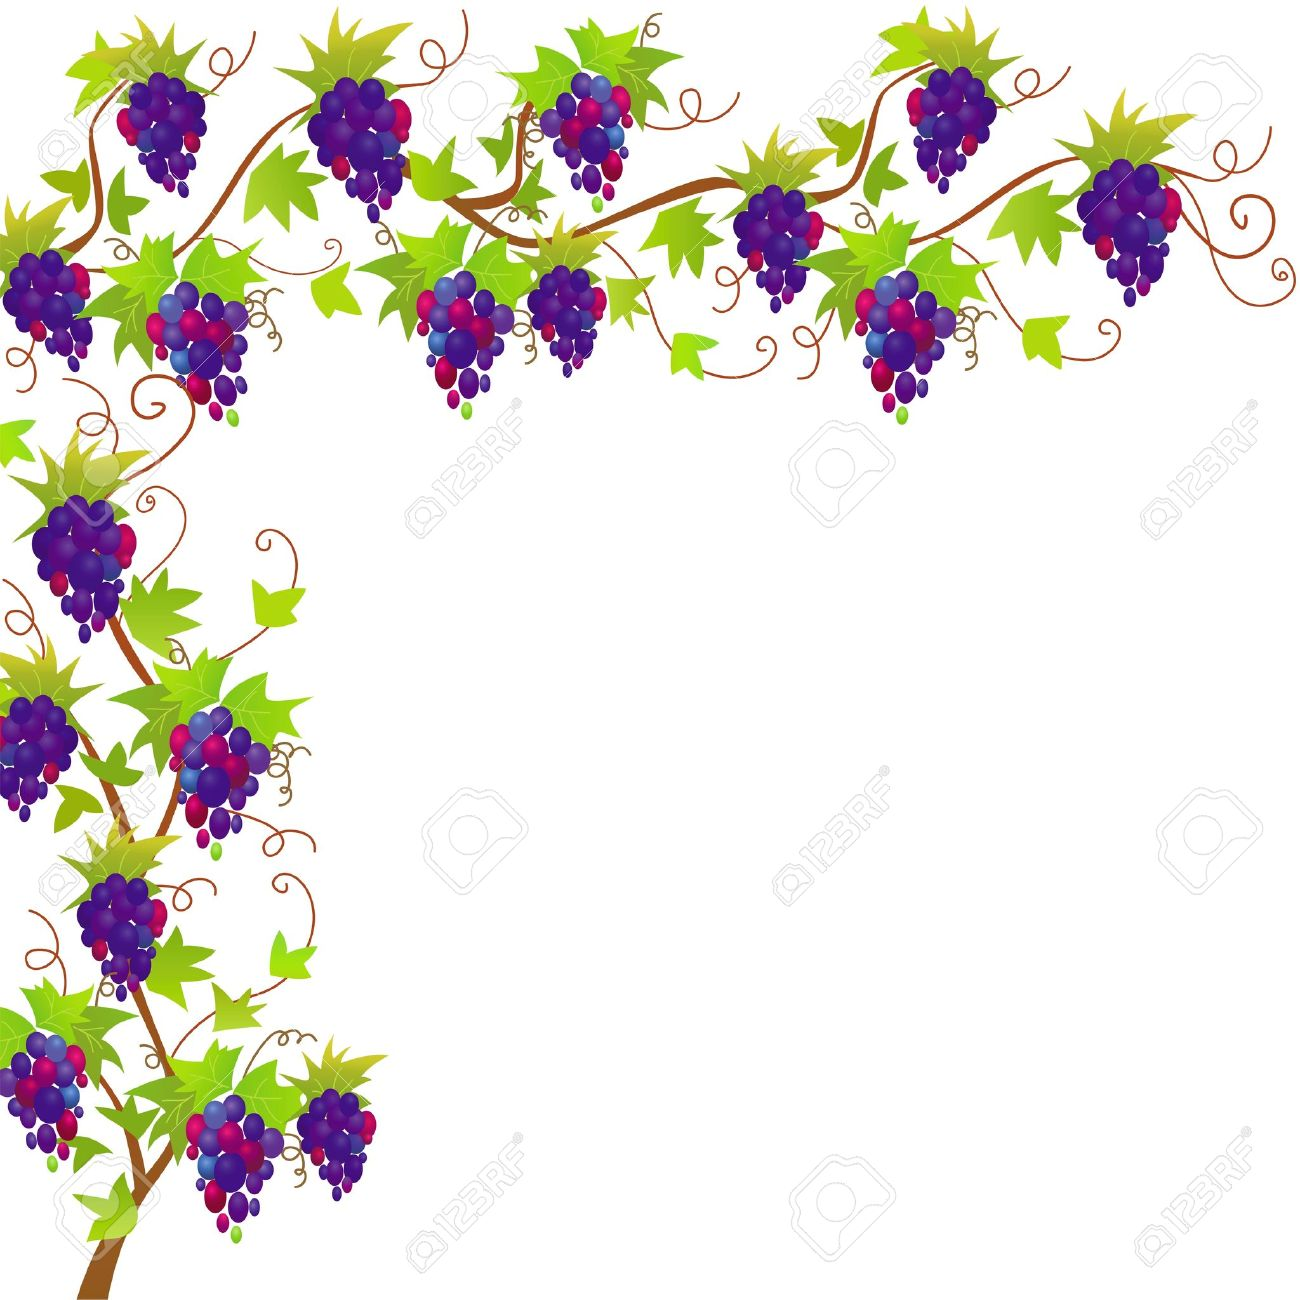 flower vine drawing at getdrawings com free for personal use rh getdrawings com Vine Border Clip Art Large Vine Clip Art